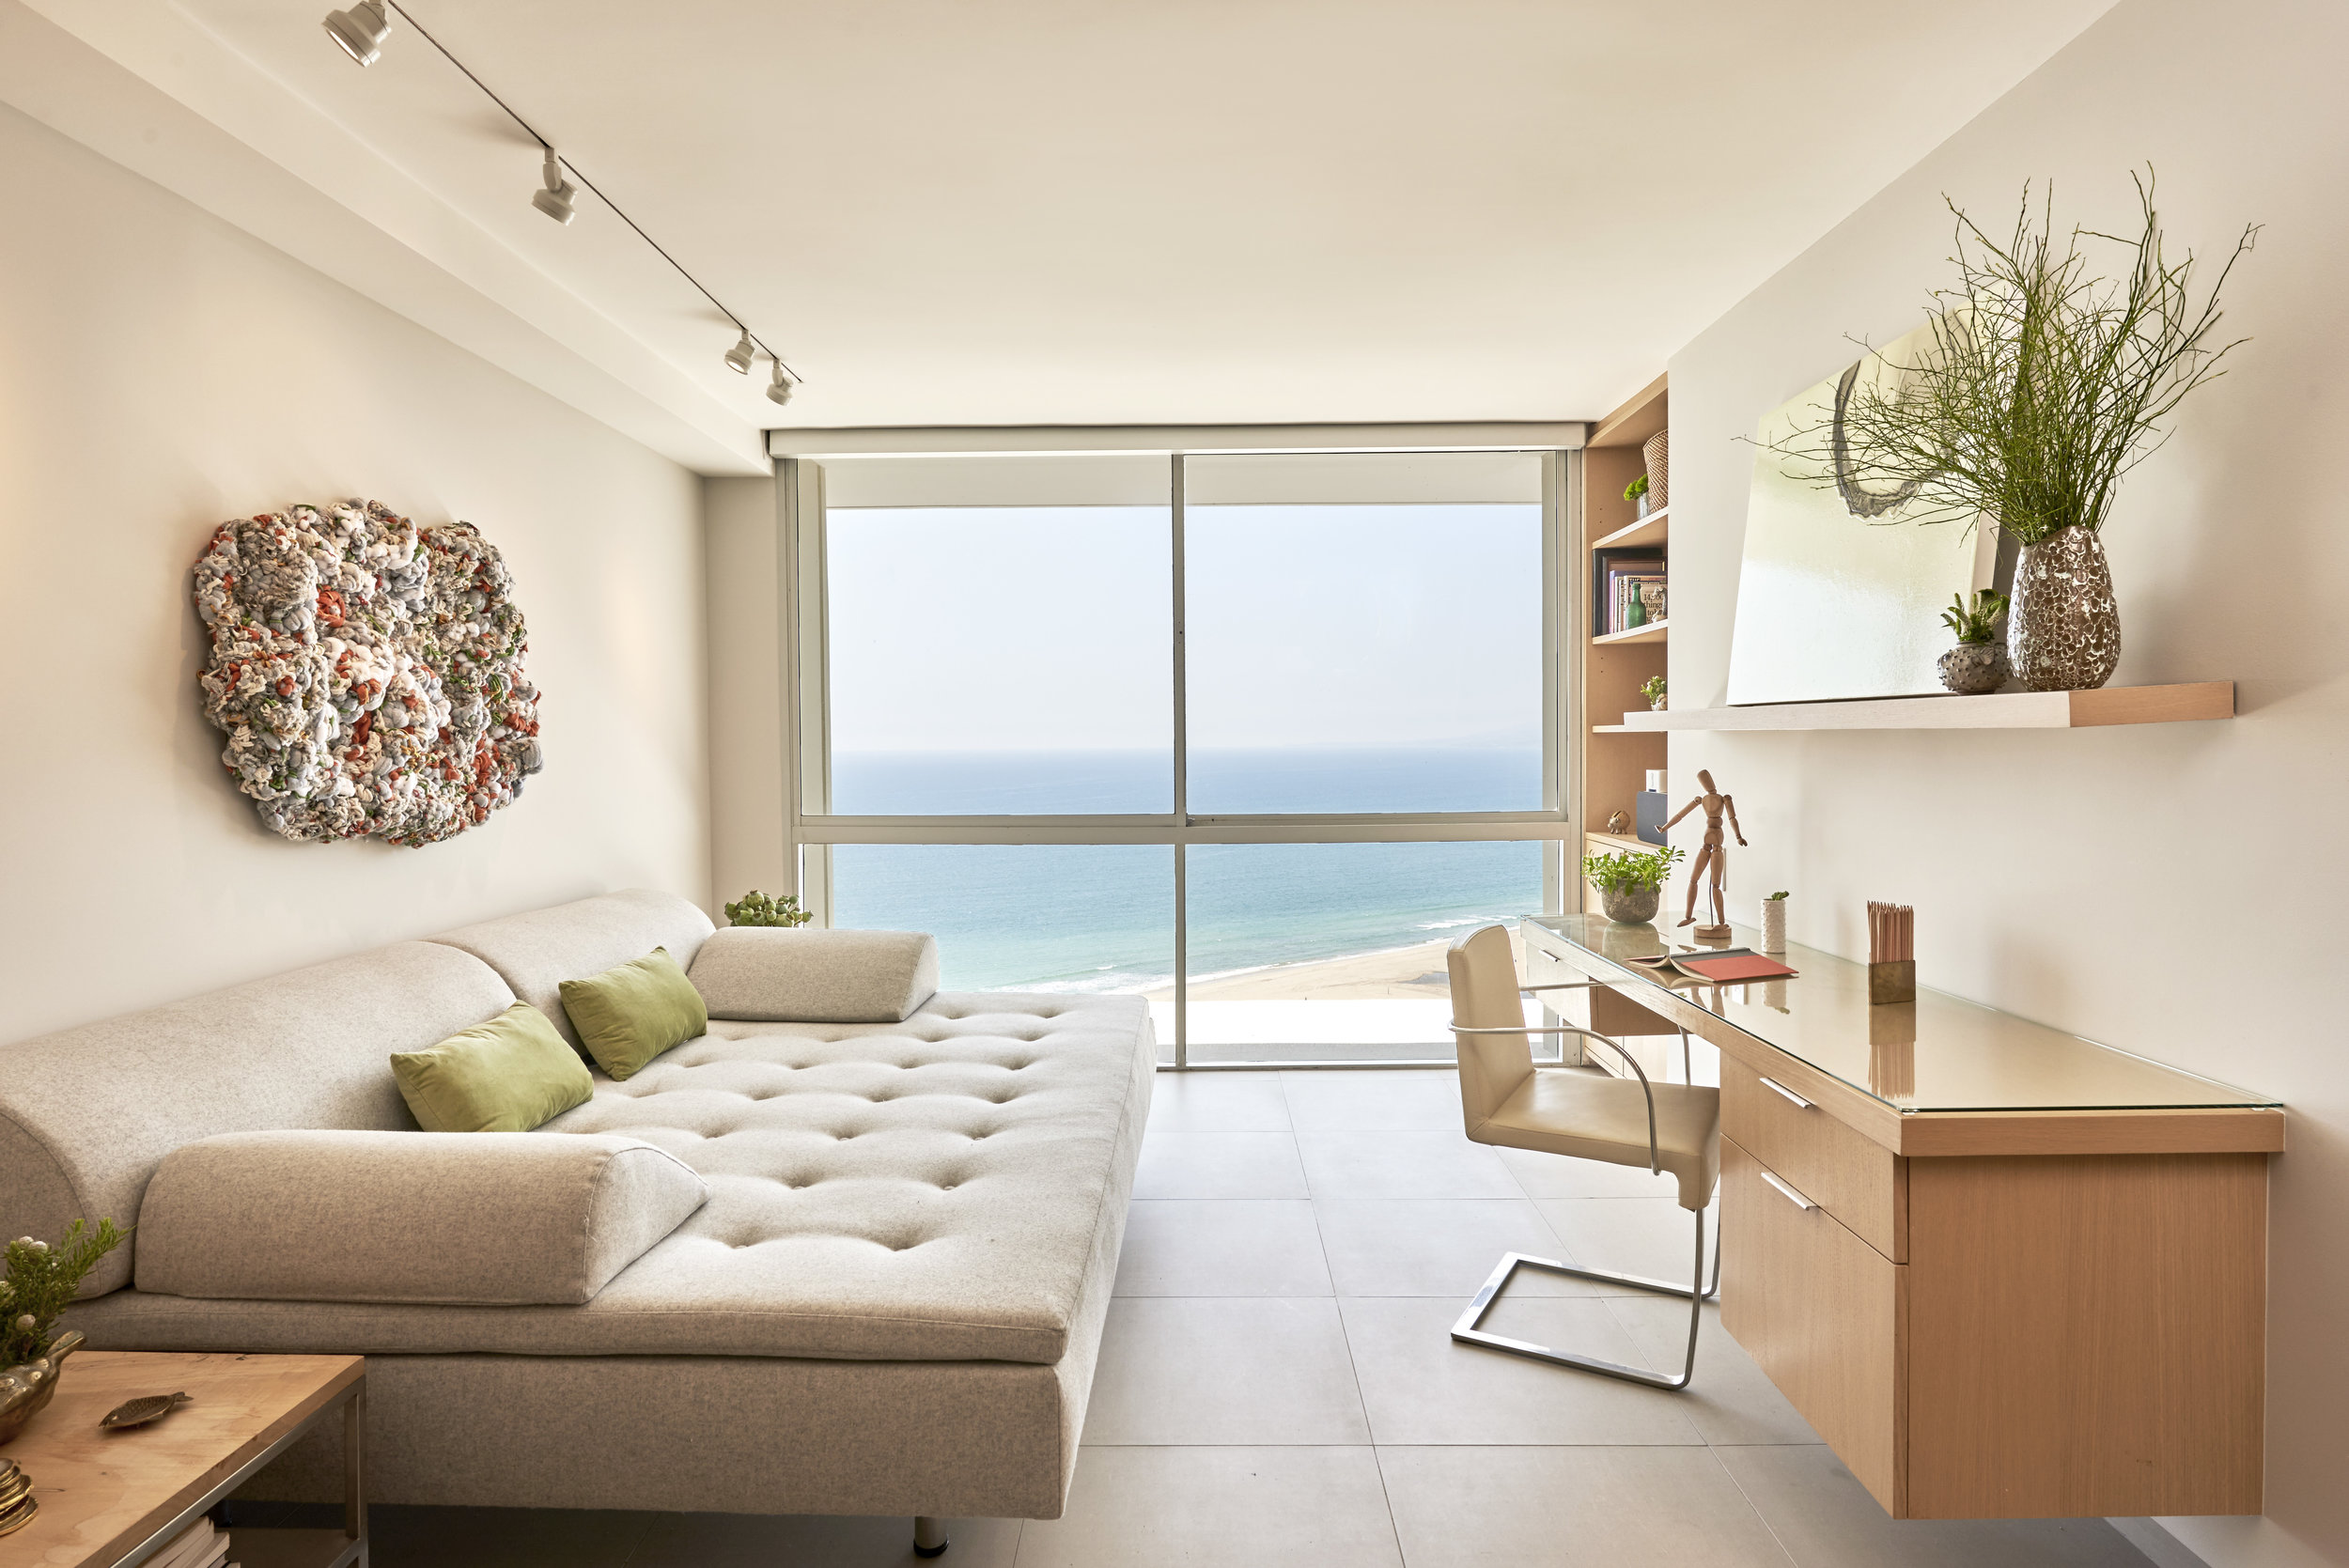 Sarah Barnard uses the ocean as a focal point of this Ocean Avenue penthouse living room by utilizing a beautiful neutral color scheme that prevents the eye from becoming too distracted or strained.